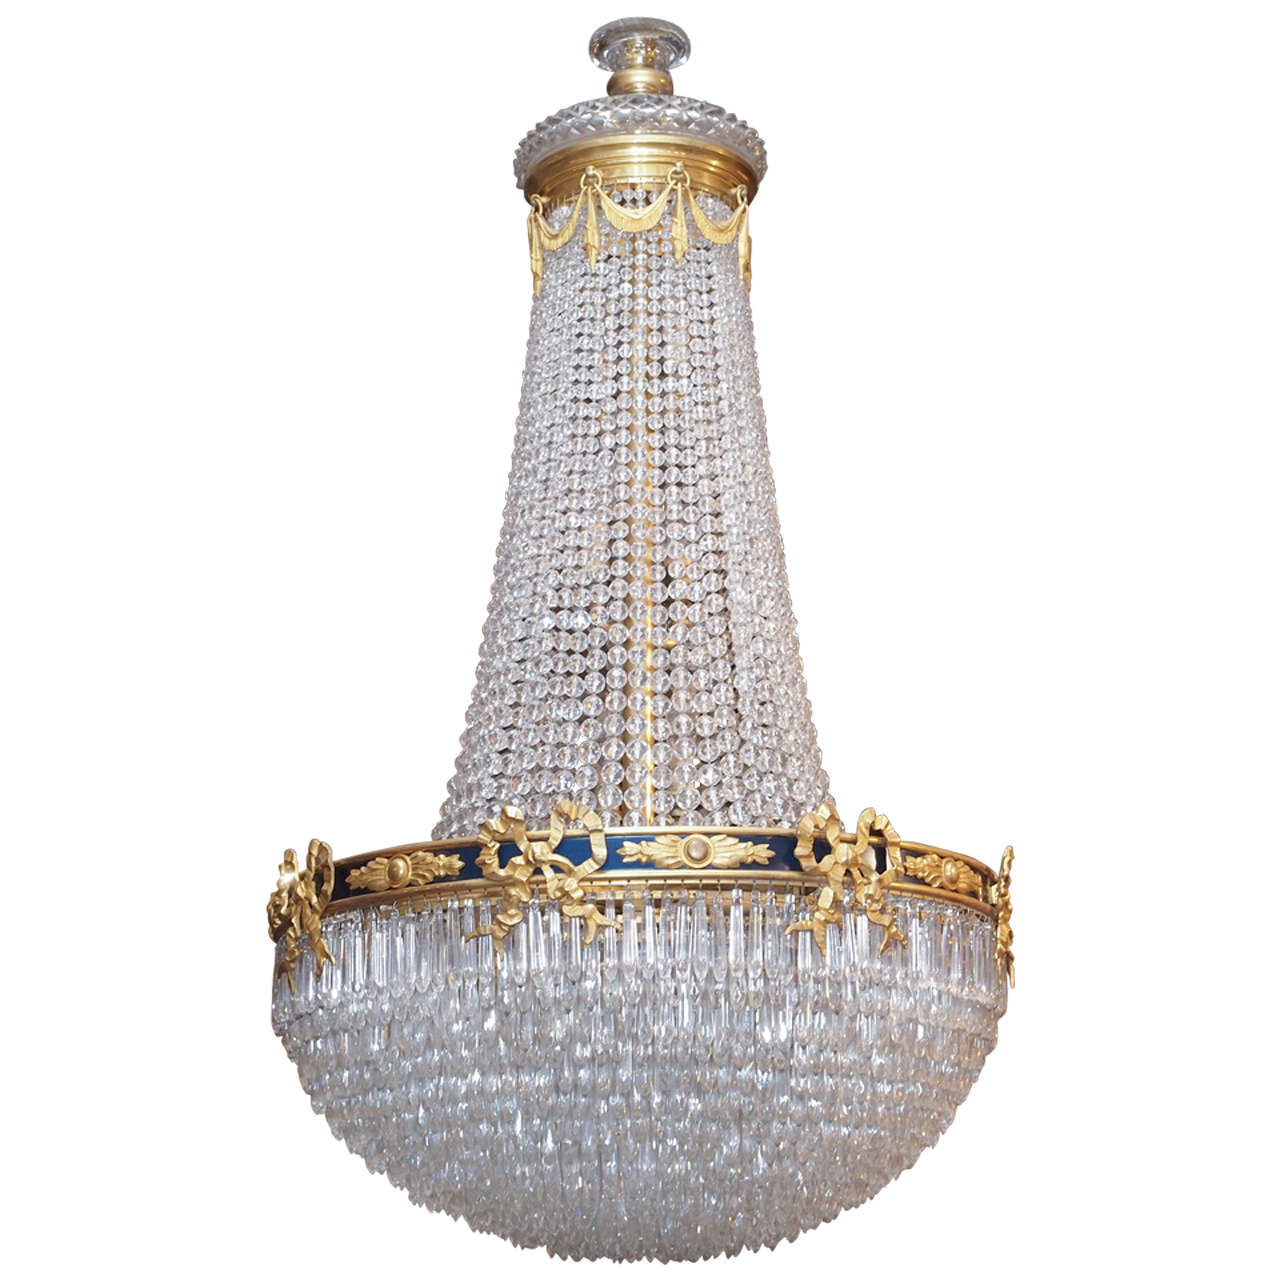 Antique empire exceptional baccarat waterfall chandelier for Empire antiques new orleans